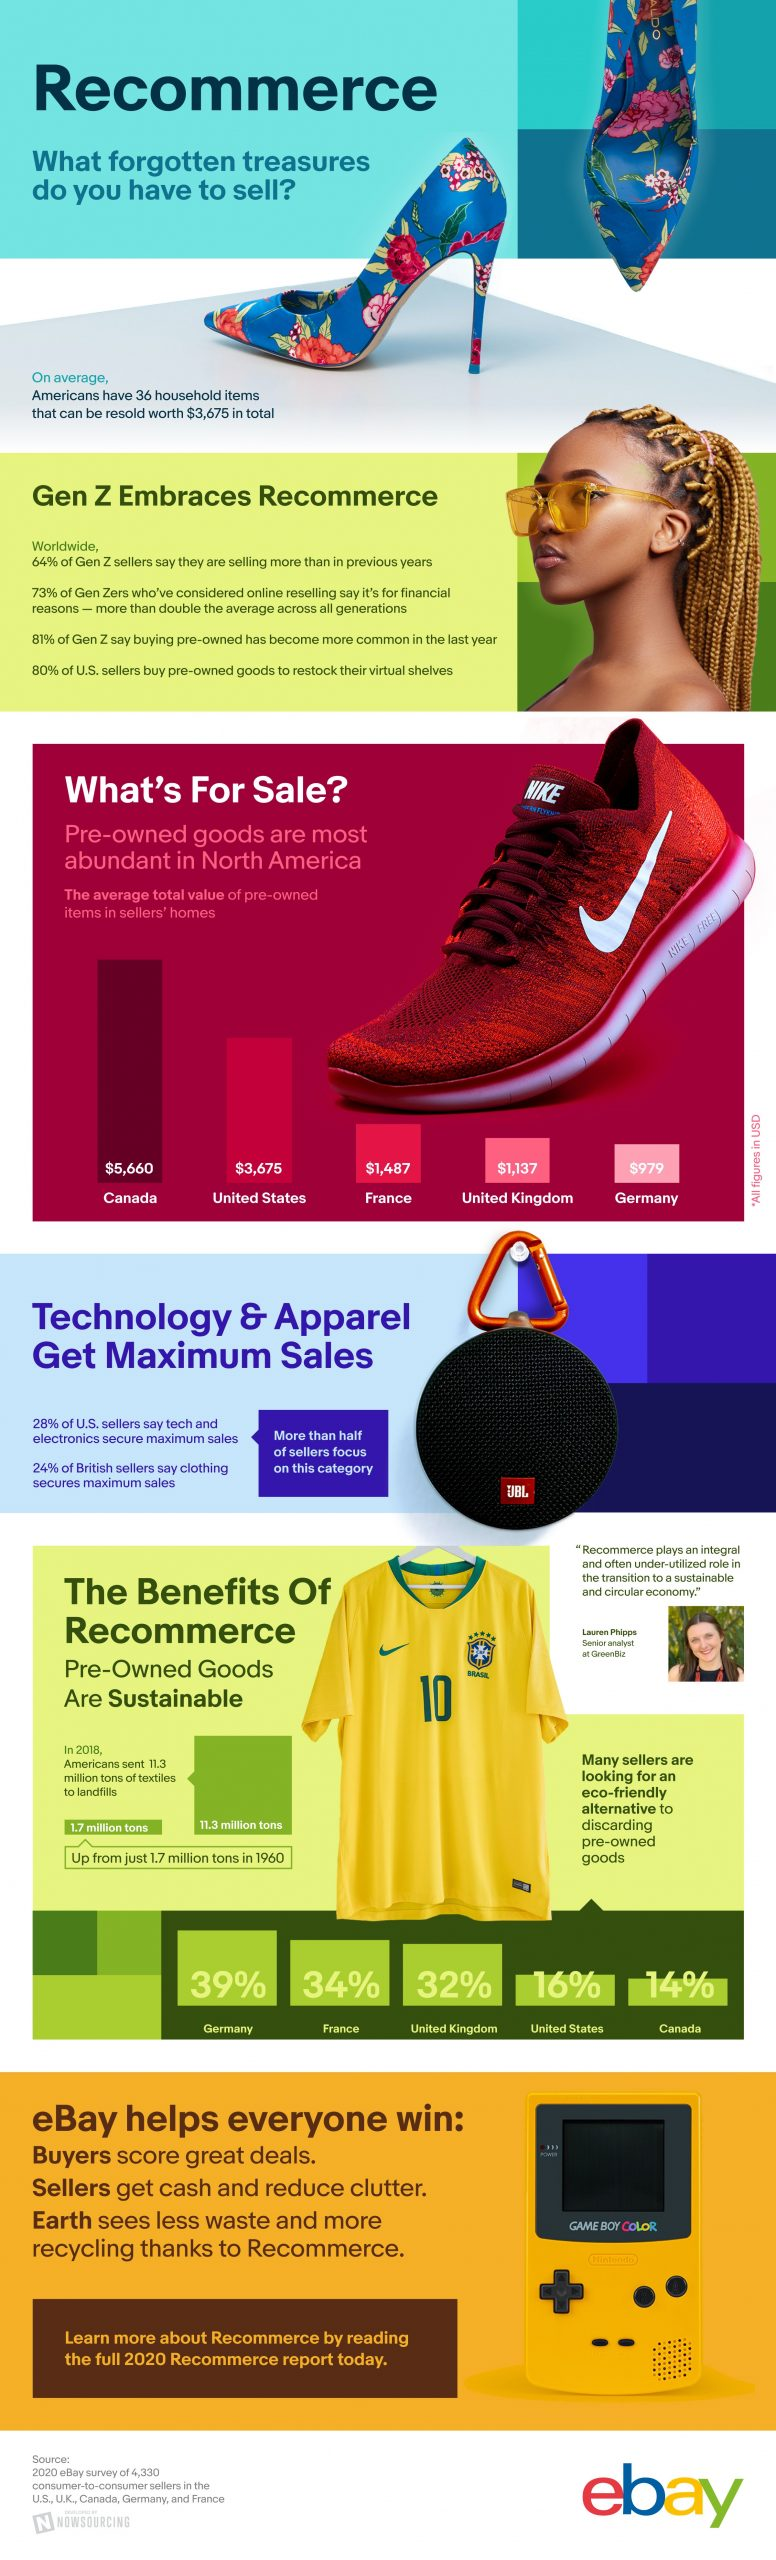 The Rise of Recommerce: the Secondhand Economy [Infographic]